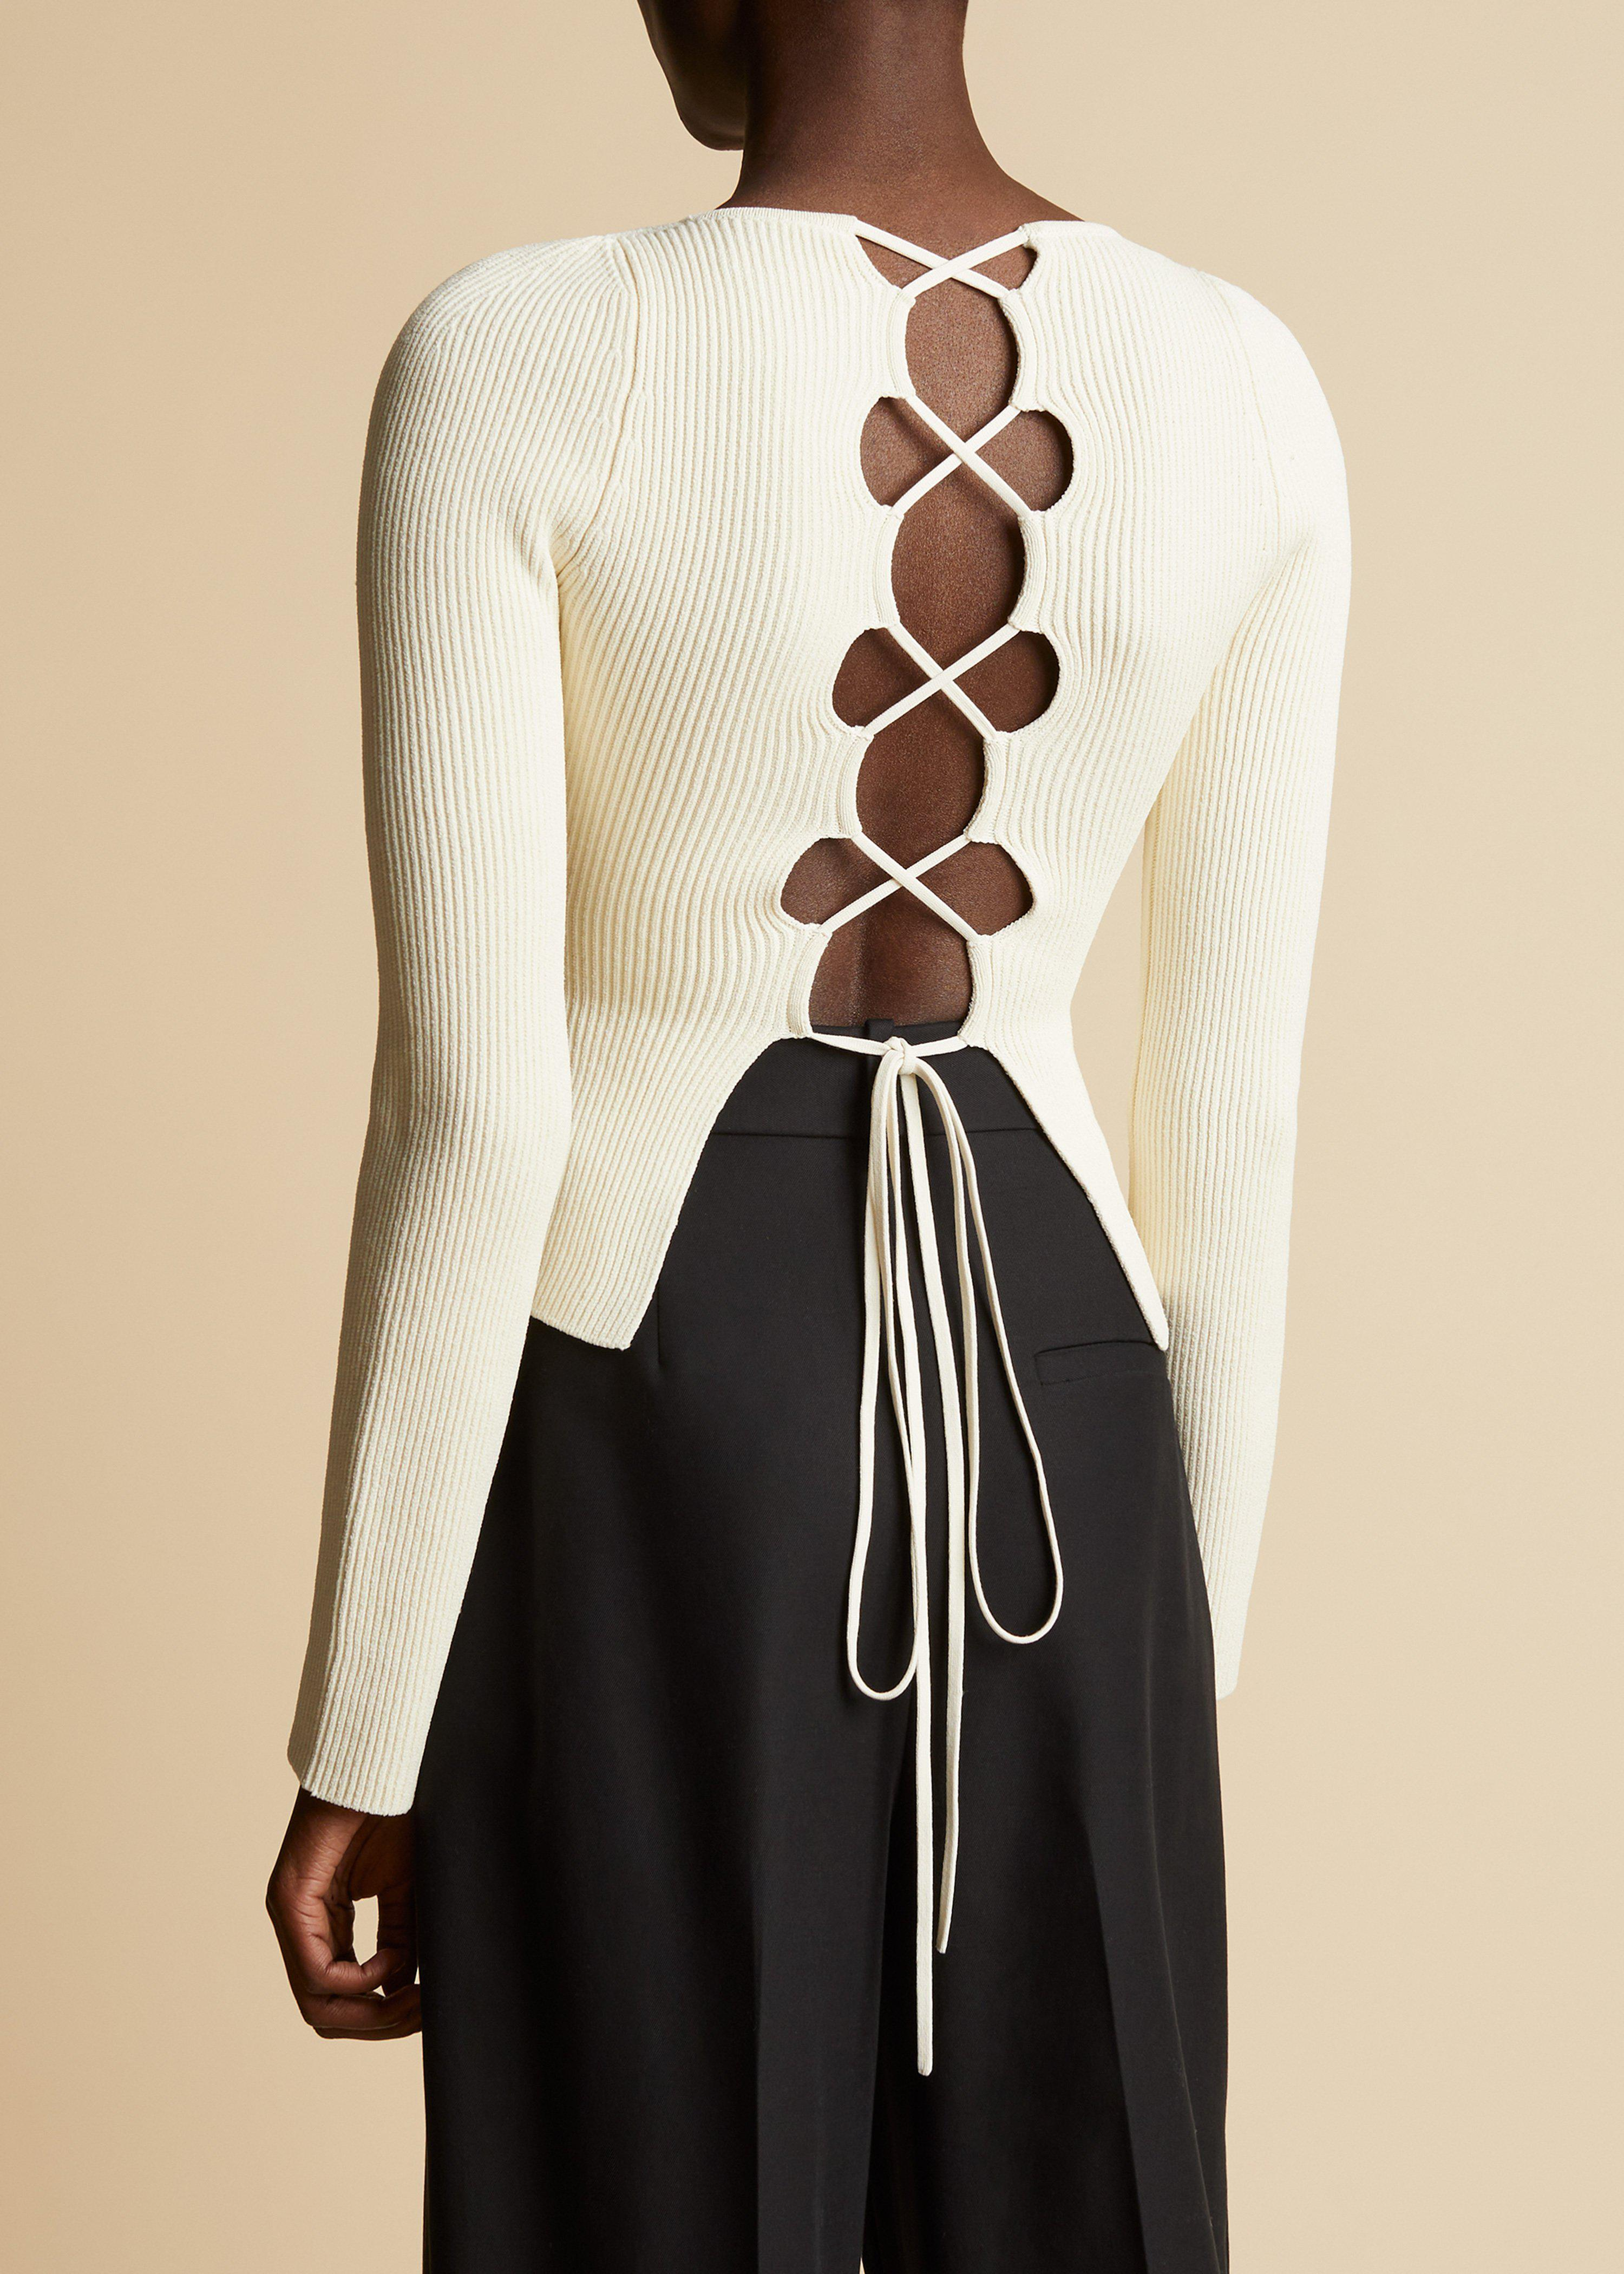 The Angelina Top in Ivory 2